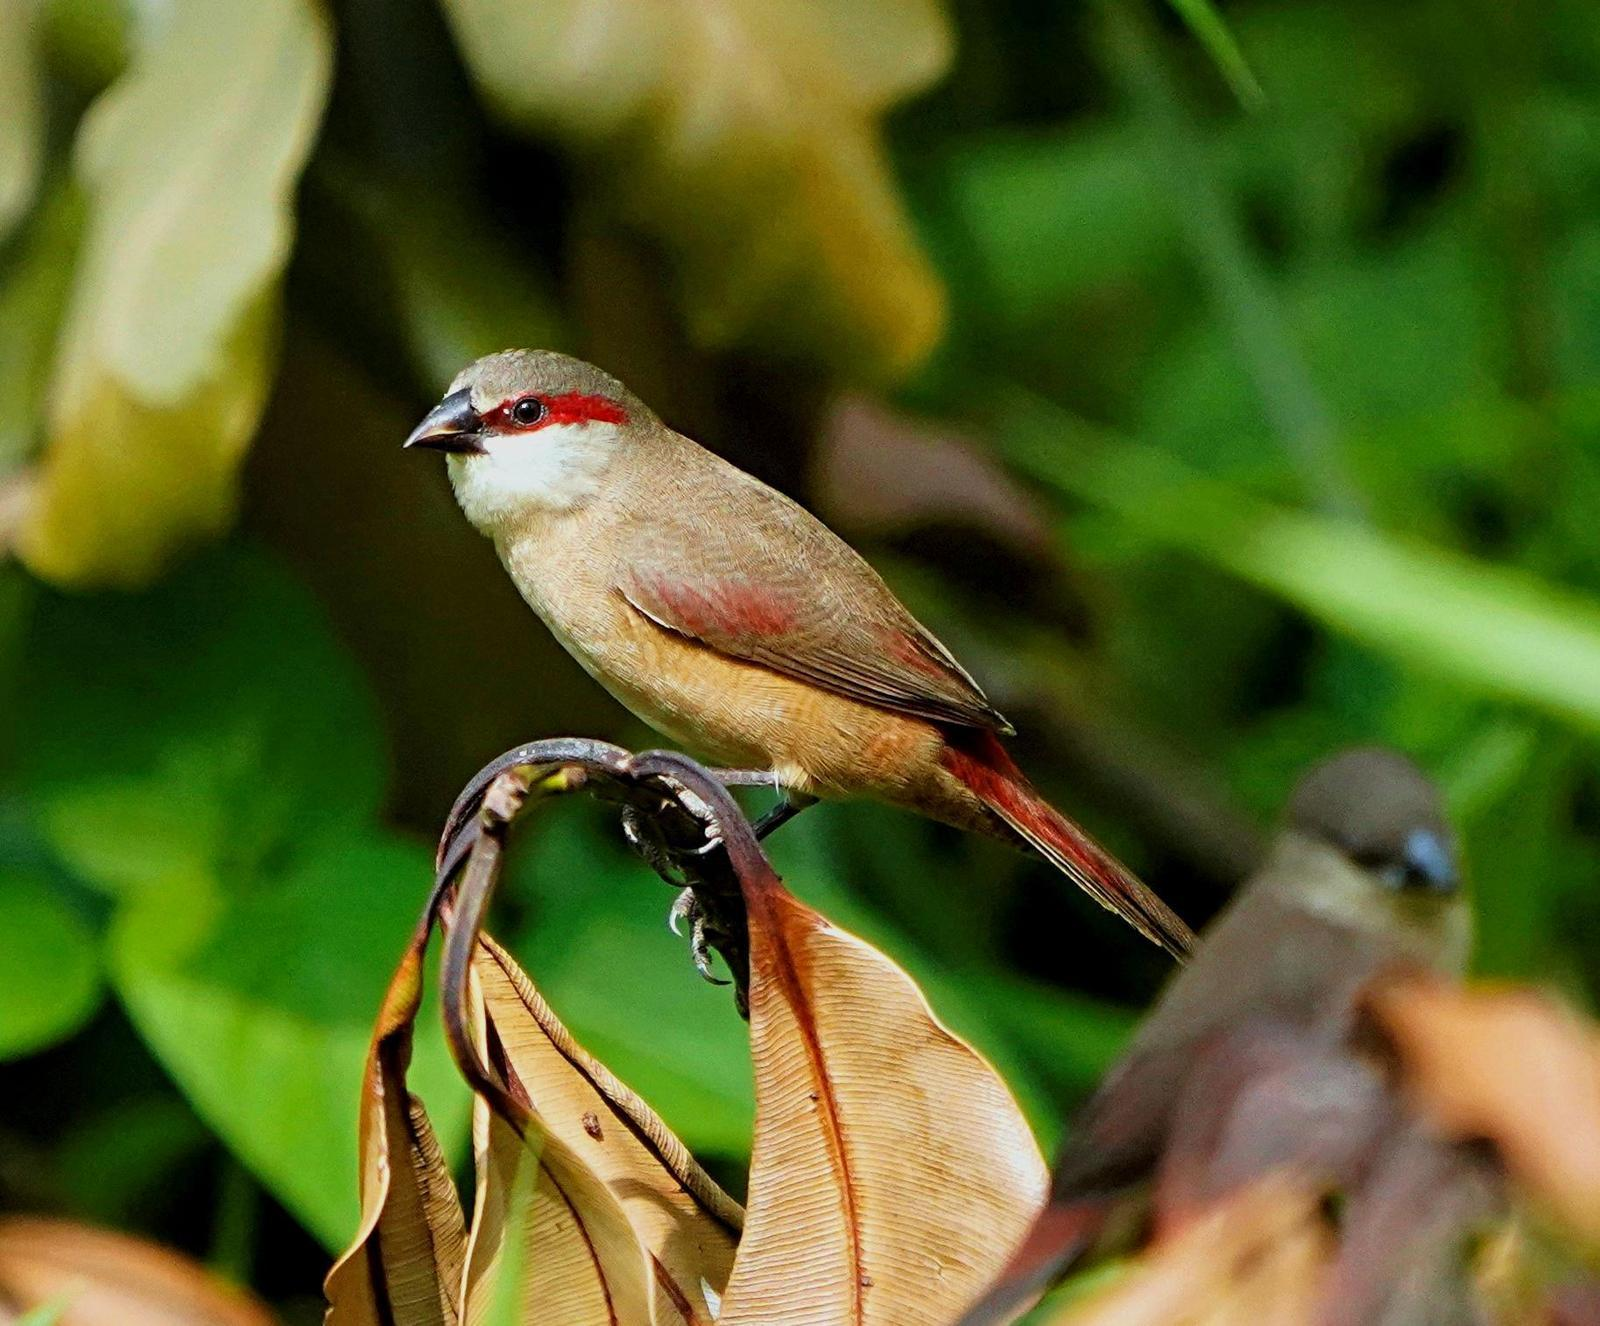 Crimson-rumped Waxbill Photo by Steven Cheong